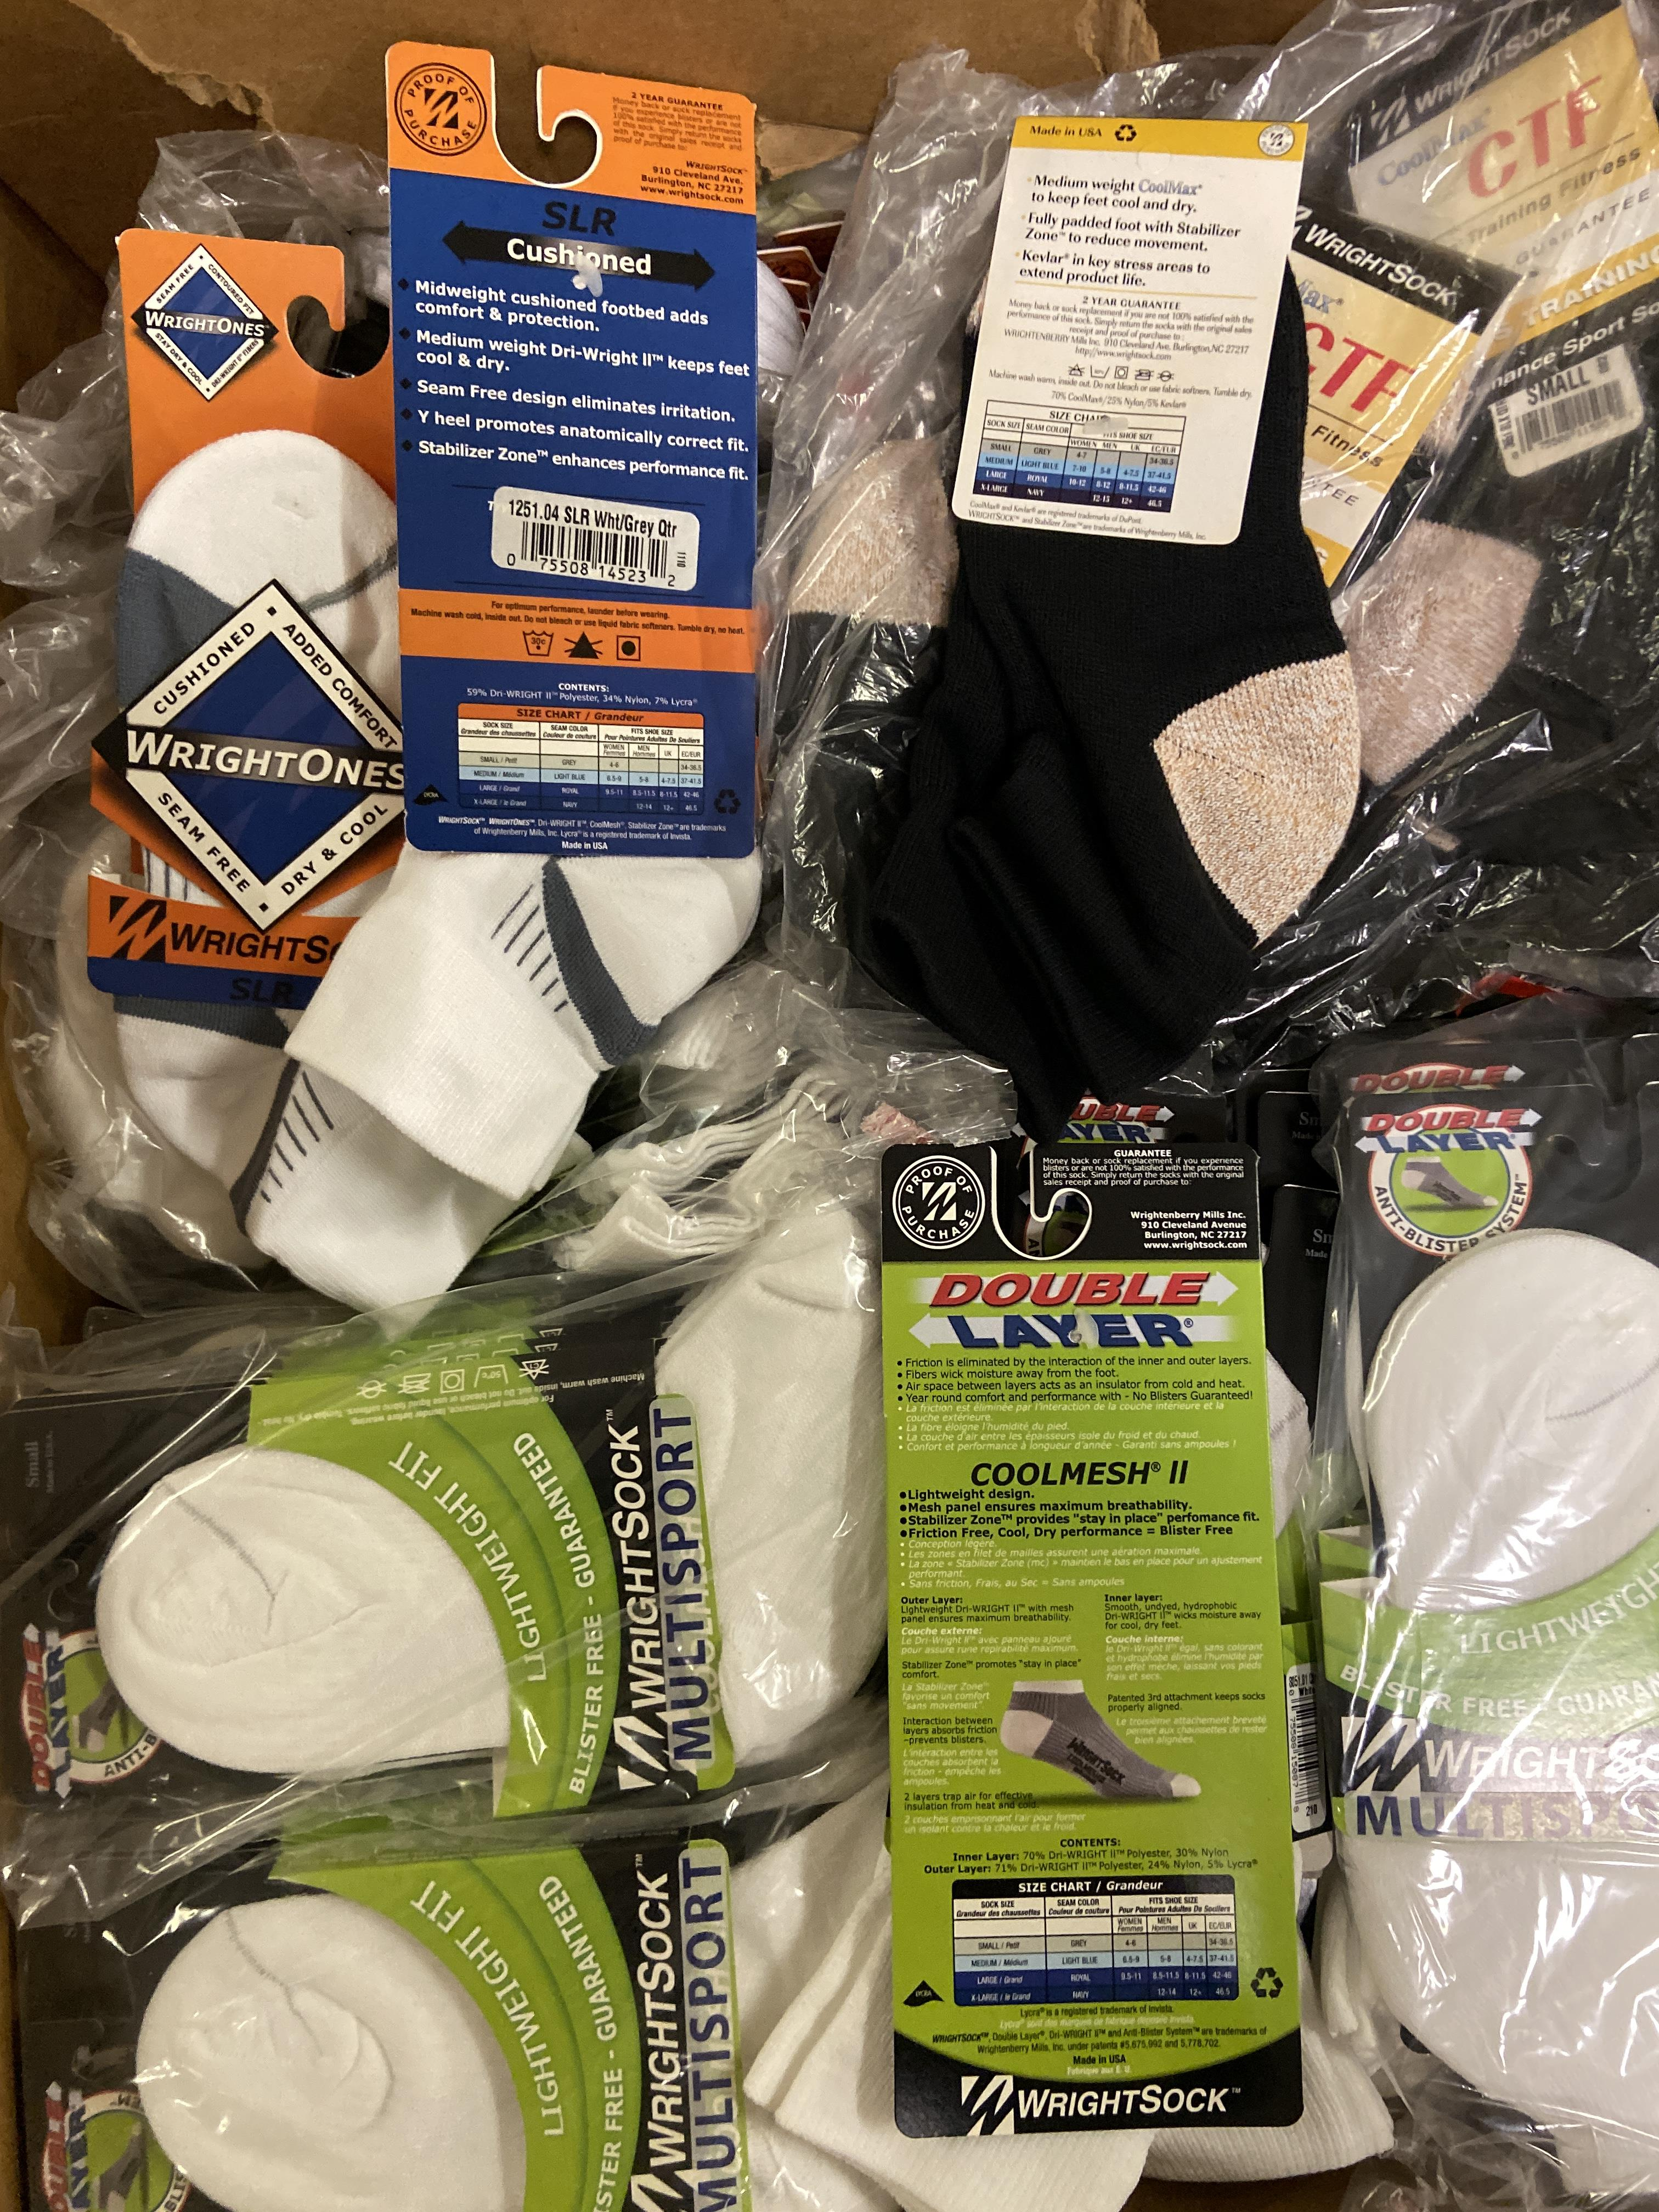 250+ packs of New Socks, Wrightsock Various Styles, Various Colors - Image 3 of 3